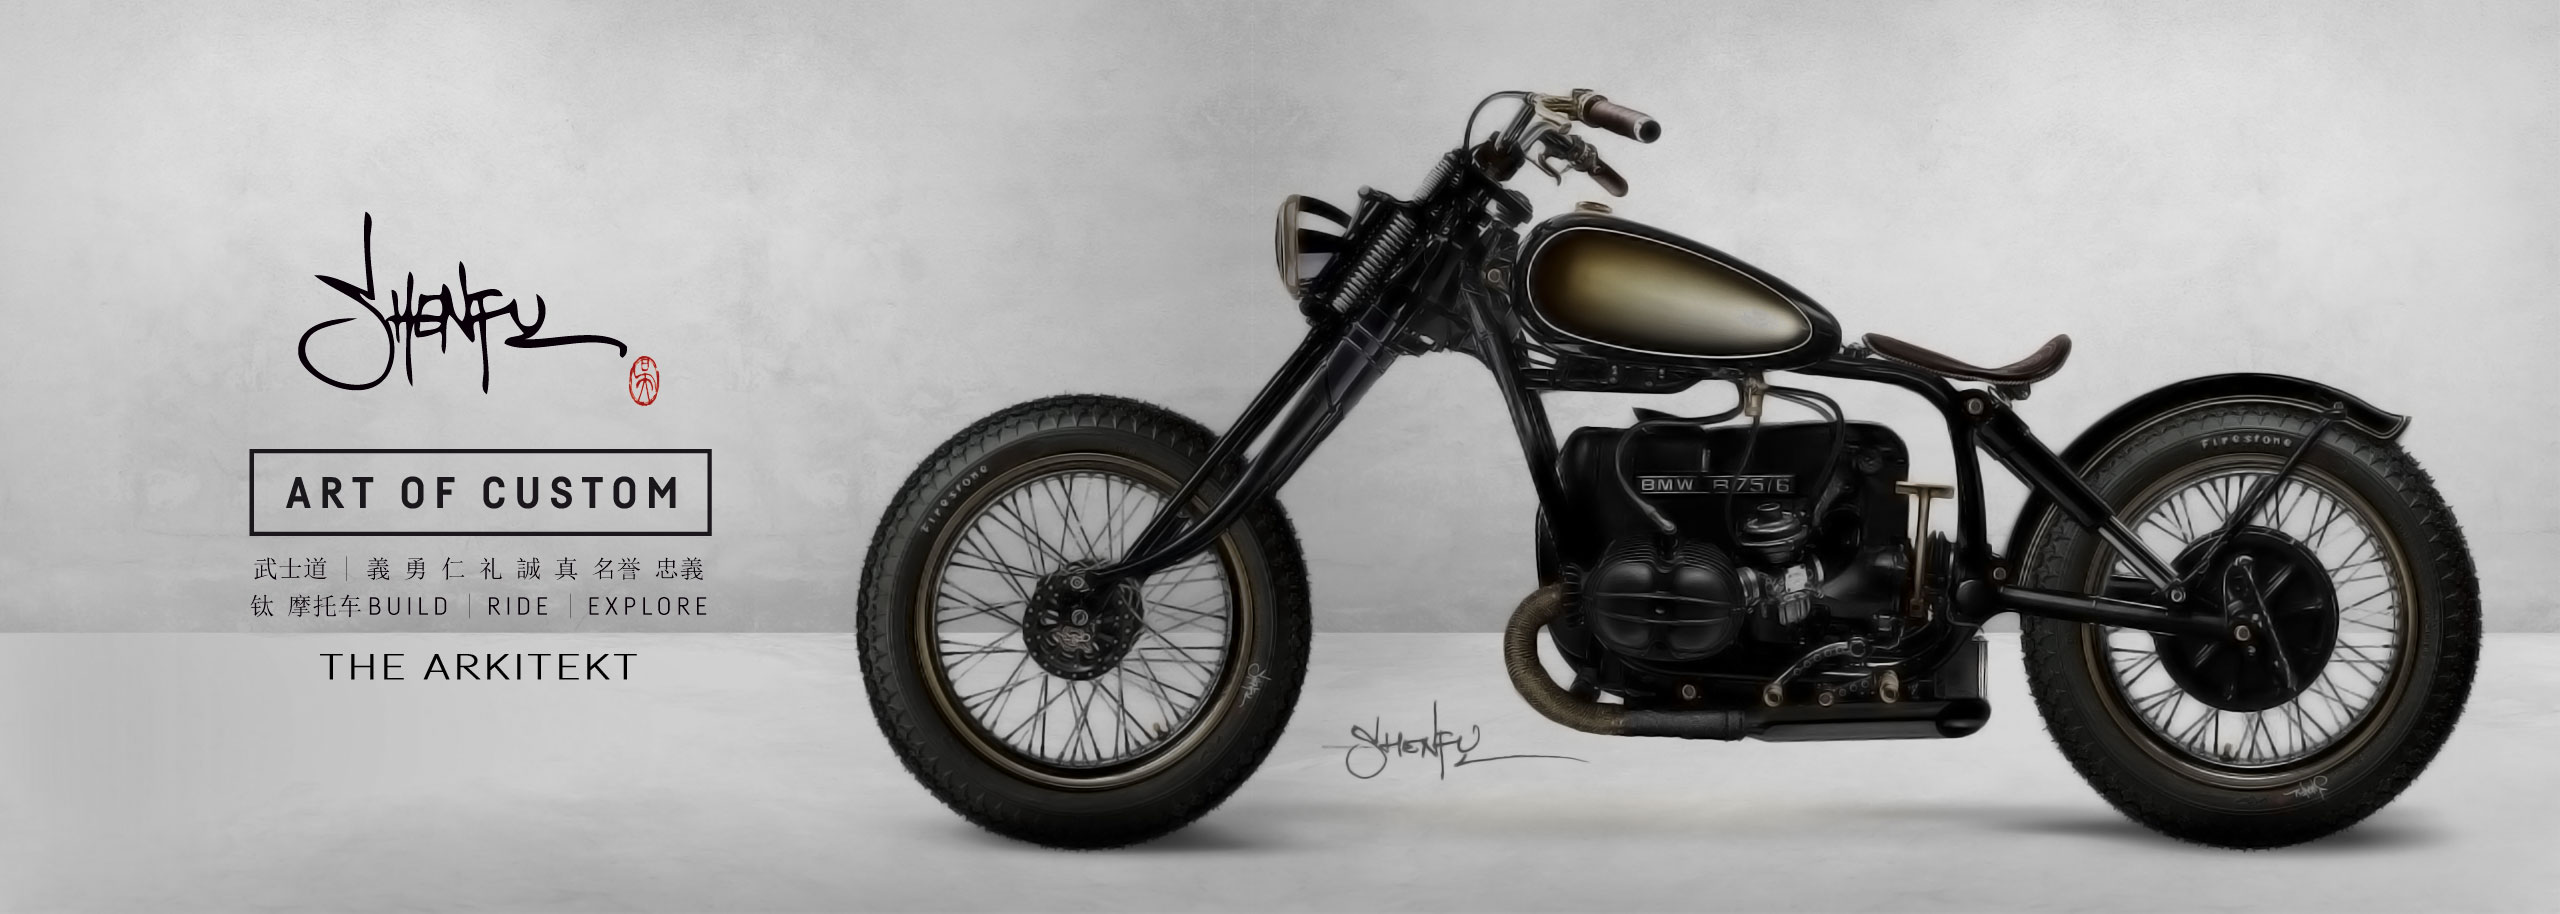 Titan-Motorcycle-Cafe-Racer-Graz-Bike-Concept-Art-Bike-Illustration-Idea-Inspiration-by-SHENFU-Illu-Custom-Bikes-Drawing_BMW-Bobber-Arkitekt